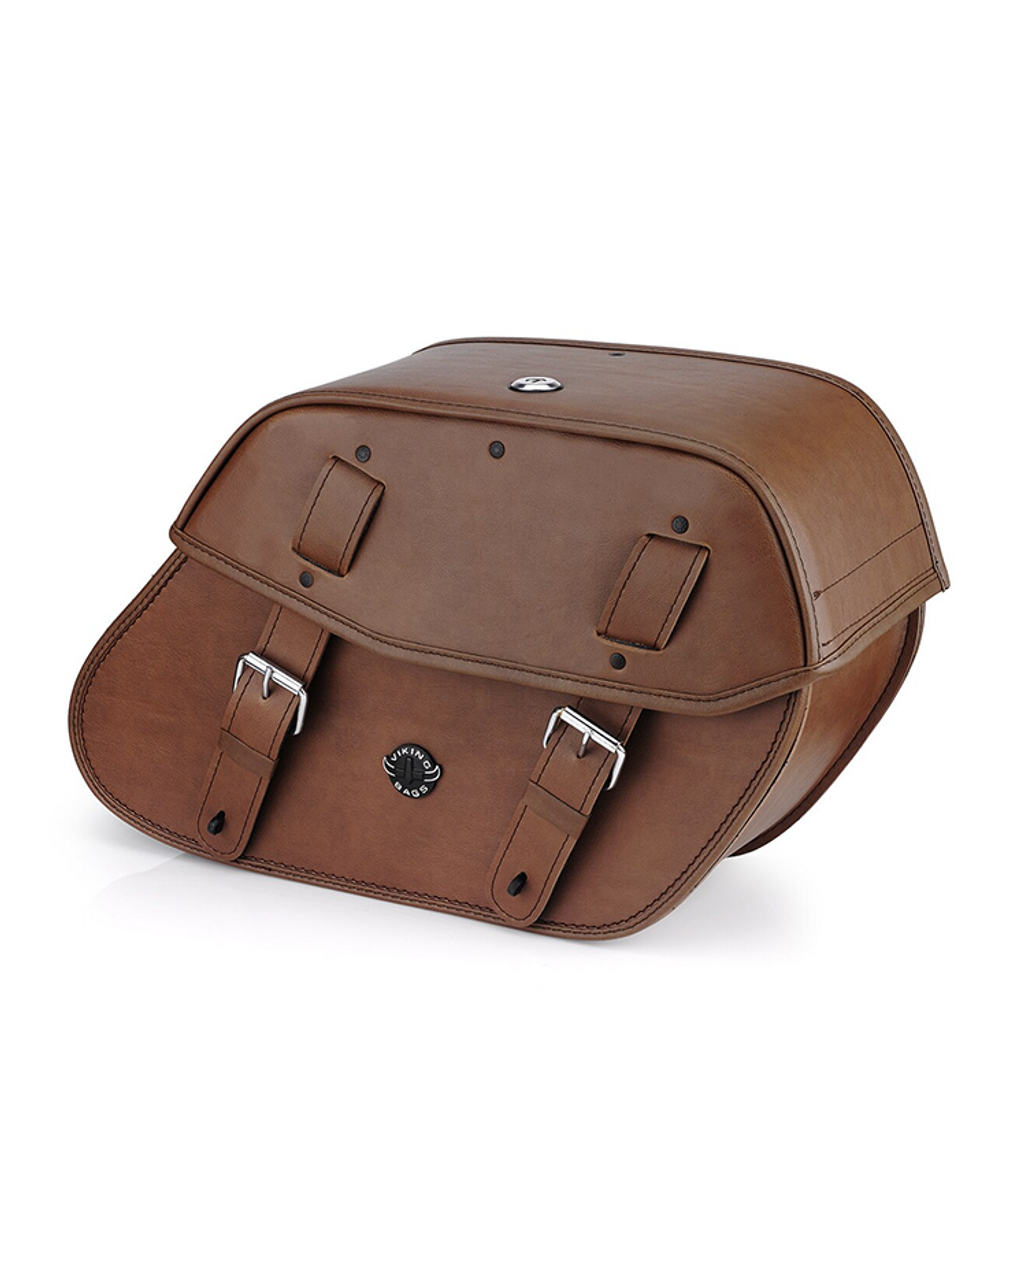 Viking Odin Brown Large Motorcycle Saddlebags For Harley Softail Fatboy FLSTF Bag View